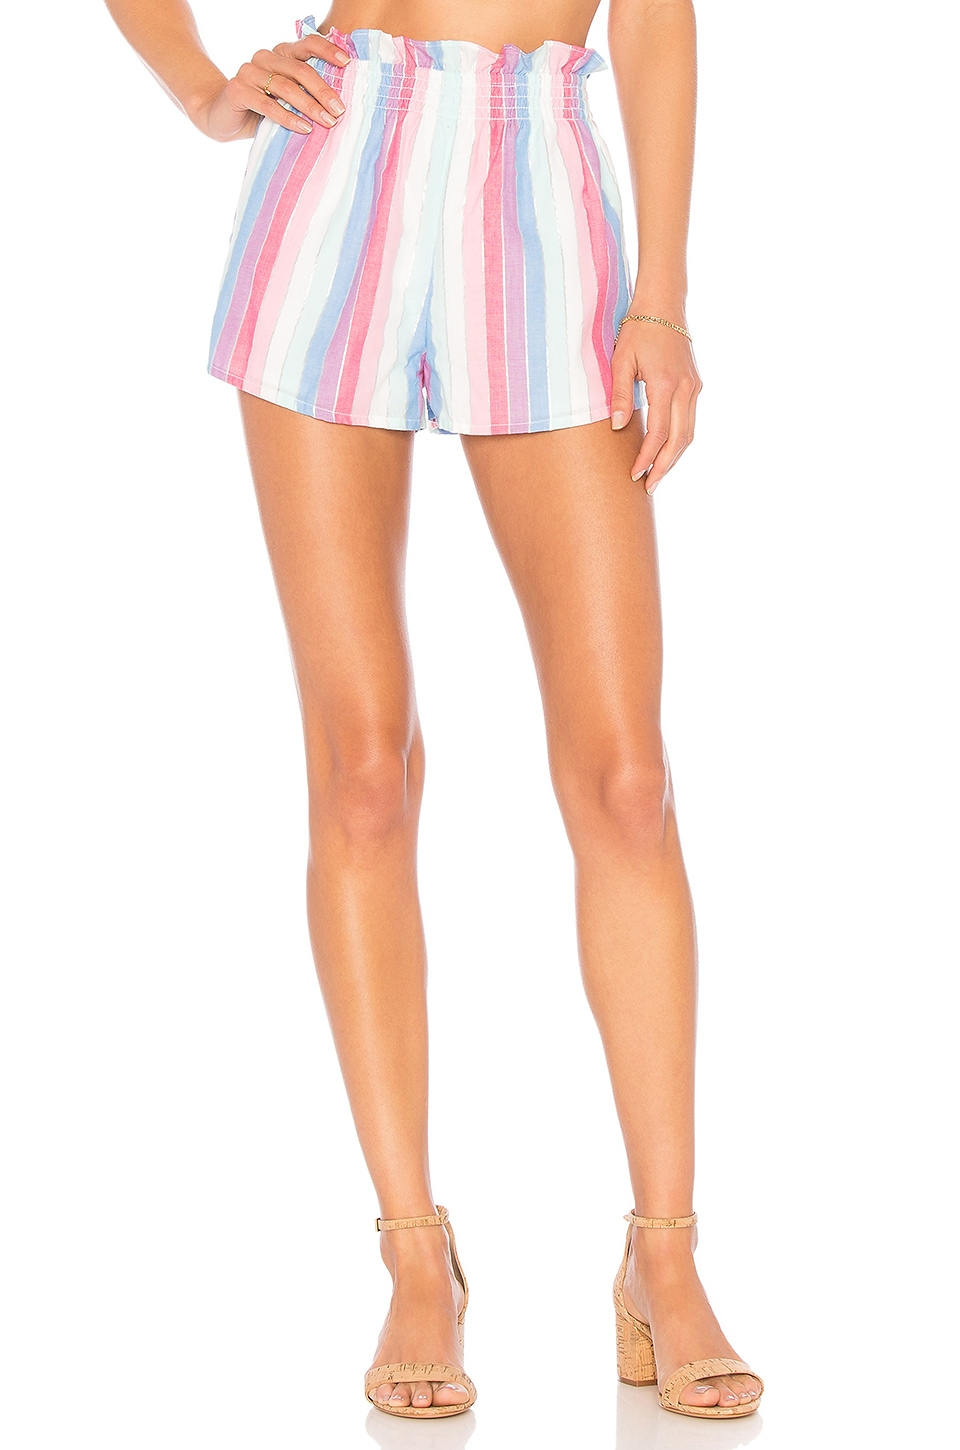 Privacy Please Russo Short in Prism